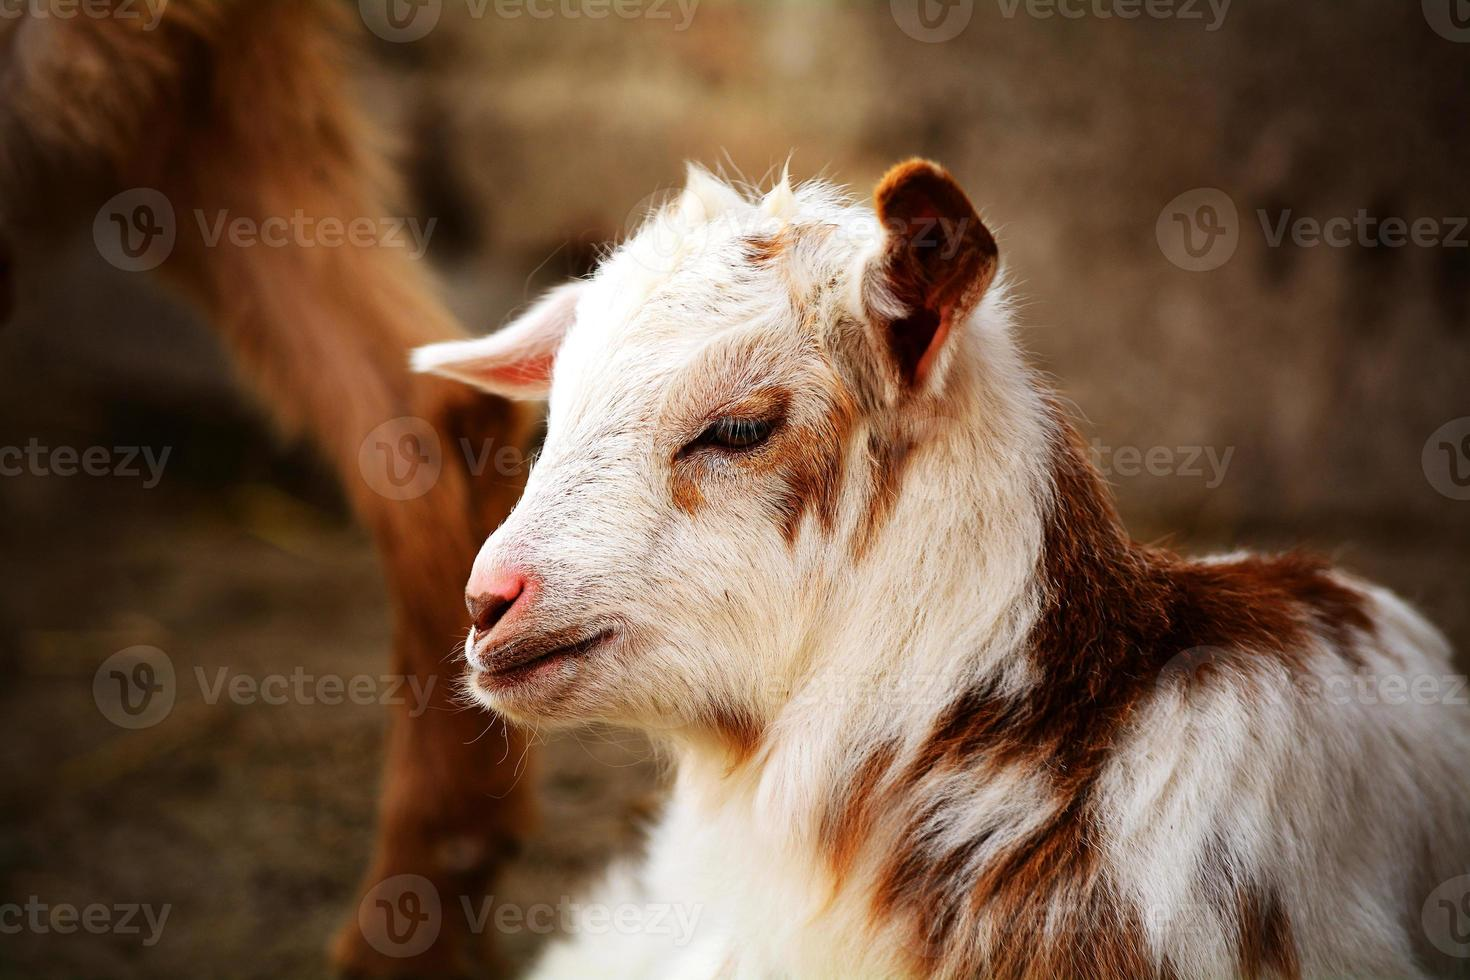 Cute brown and white kinder goat on a farm photo